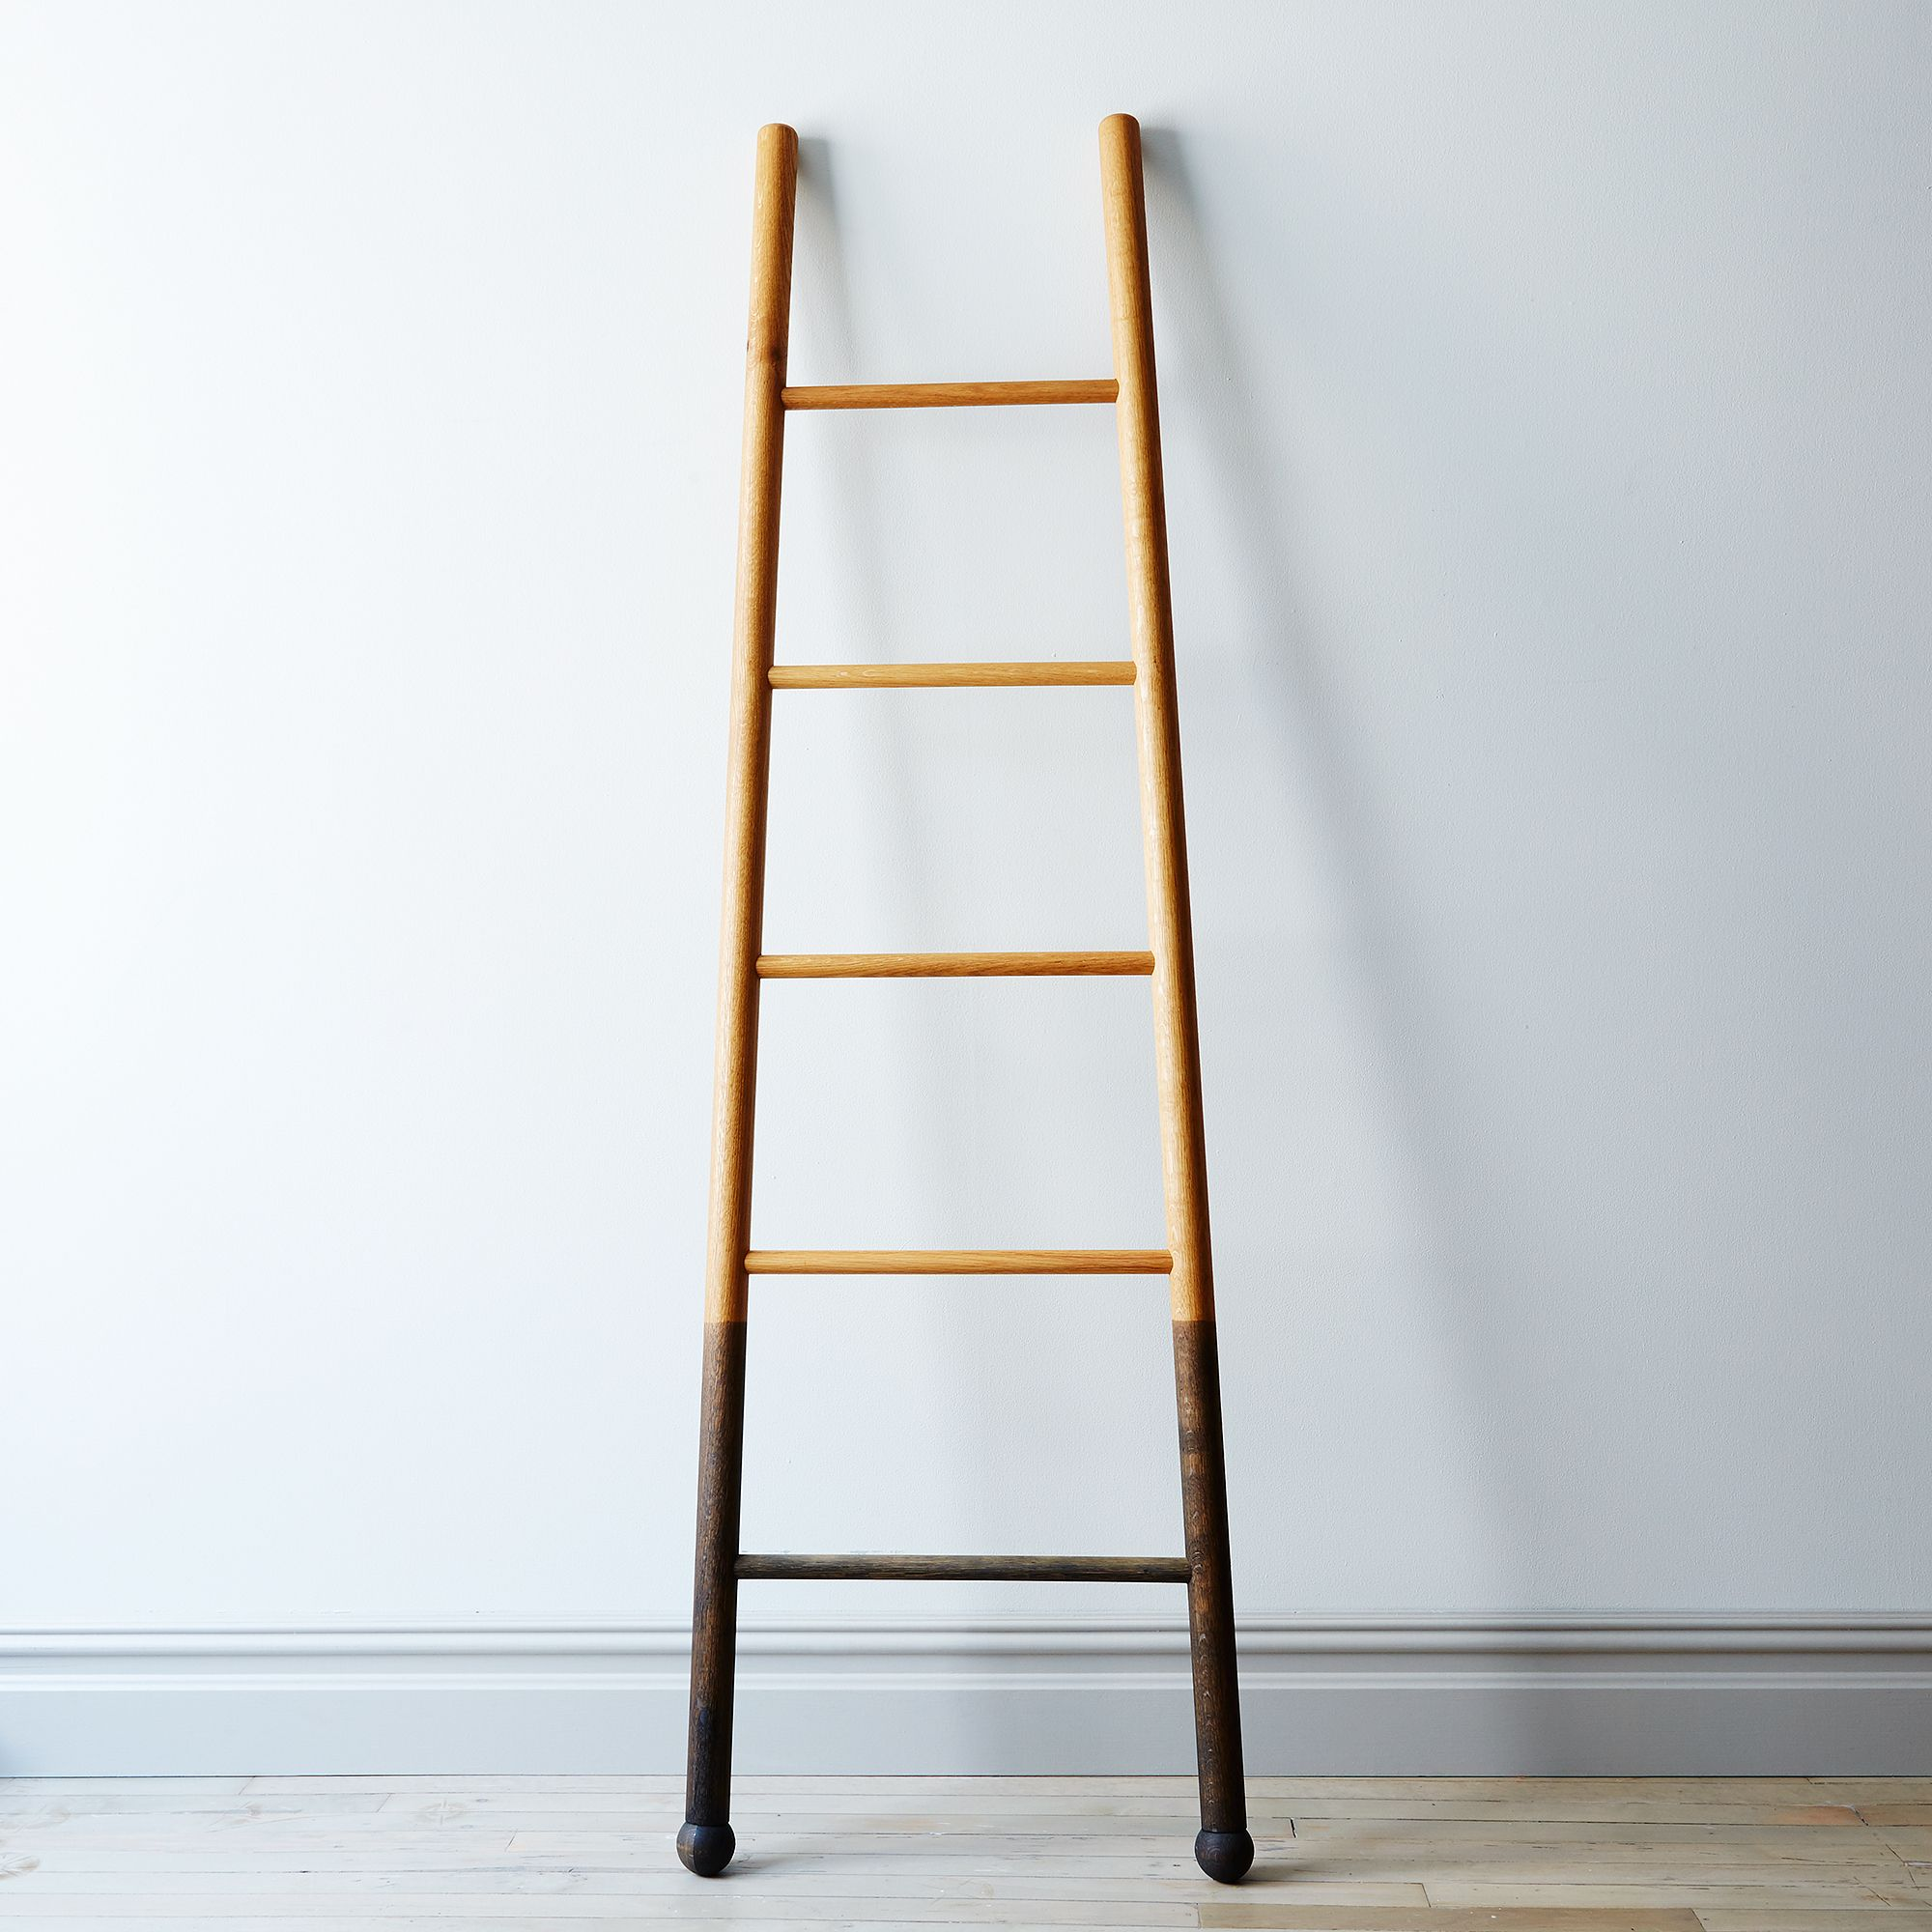 933b40db cf5f 4f0e b180 1eaf25e18303  2015 0710 lostine oxidized oak ladder silo james ransom 005